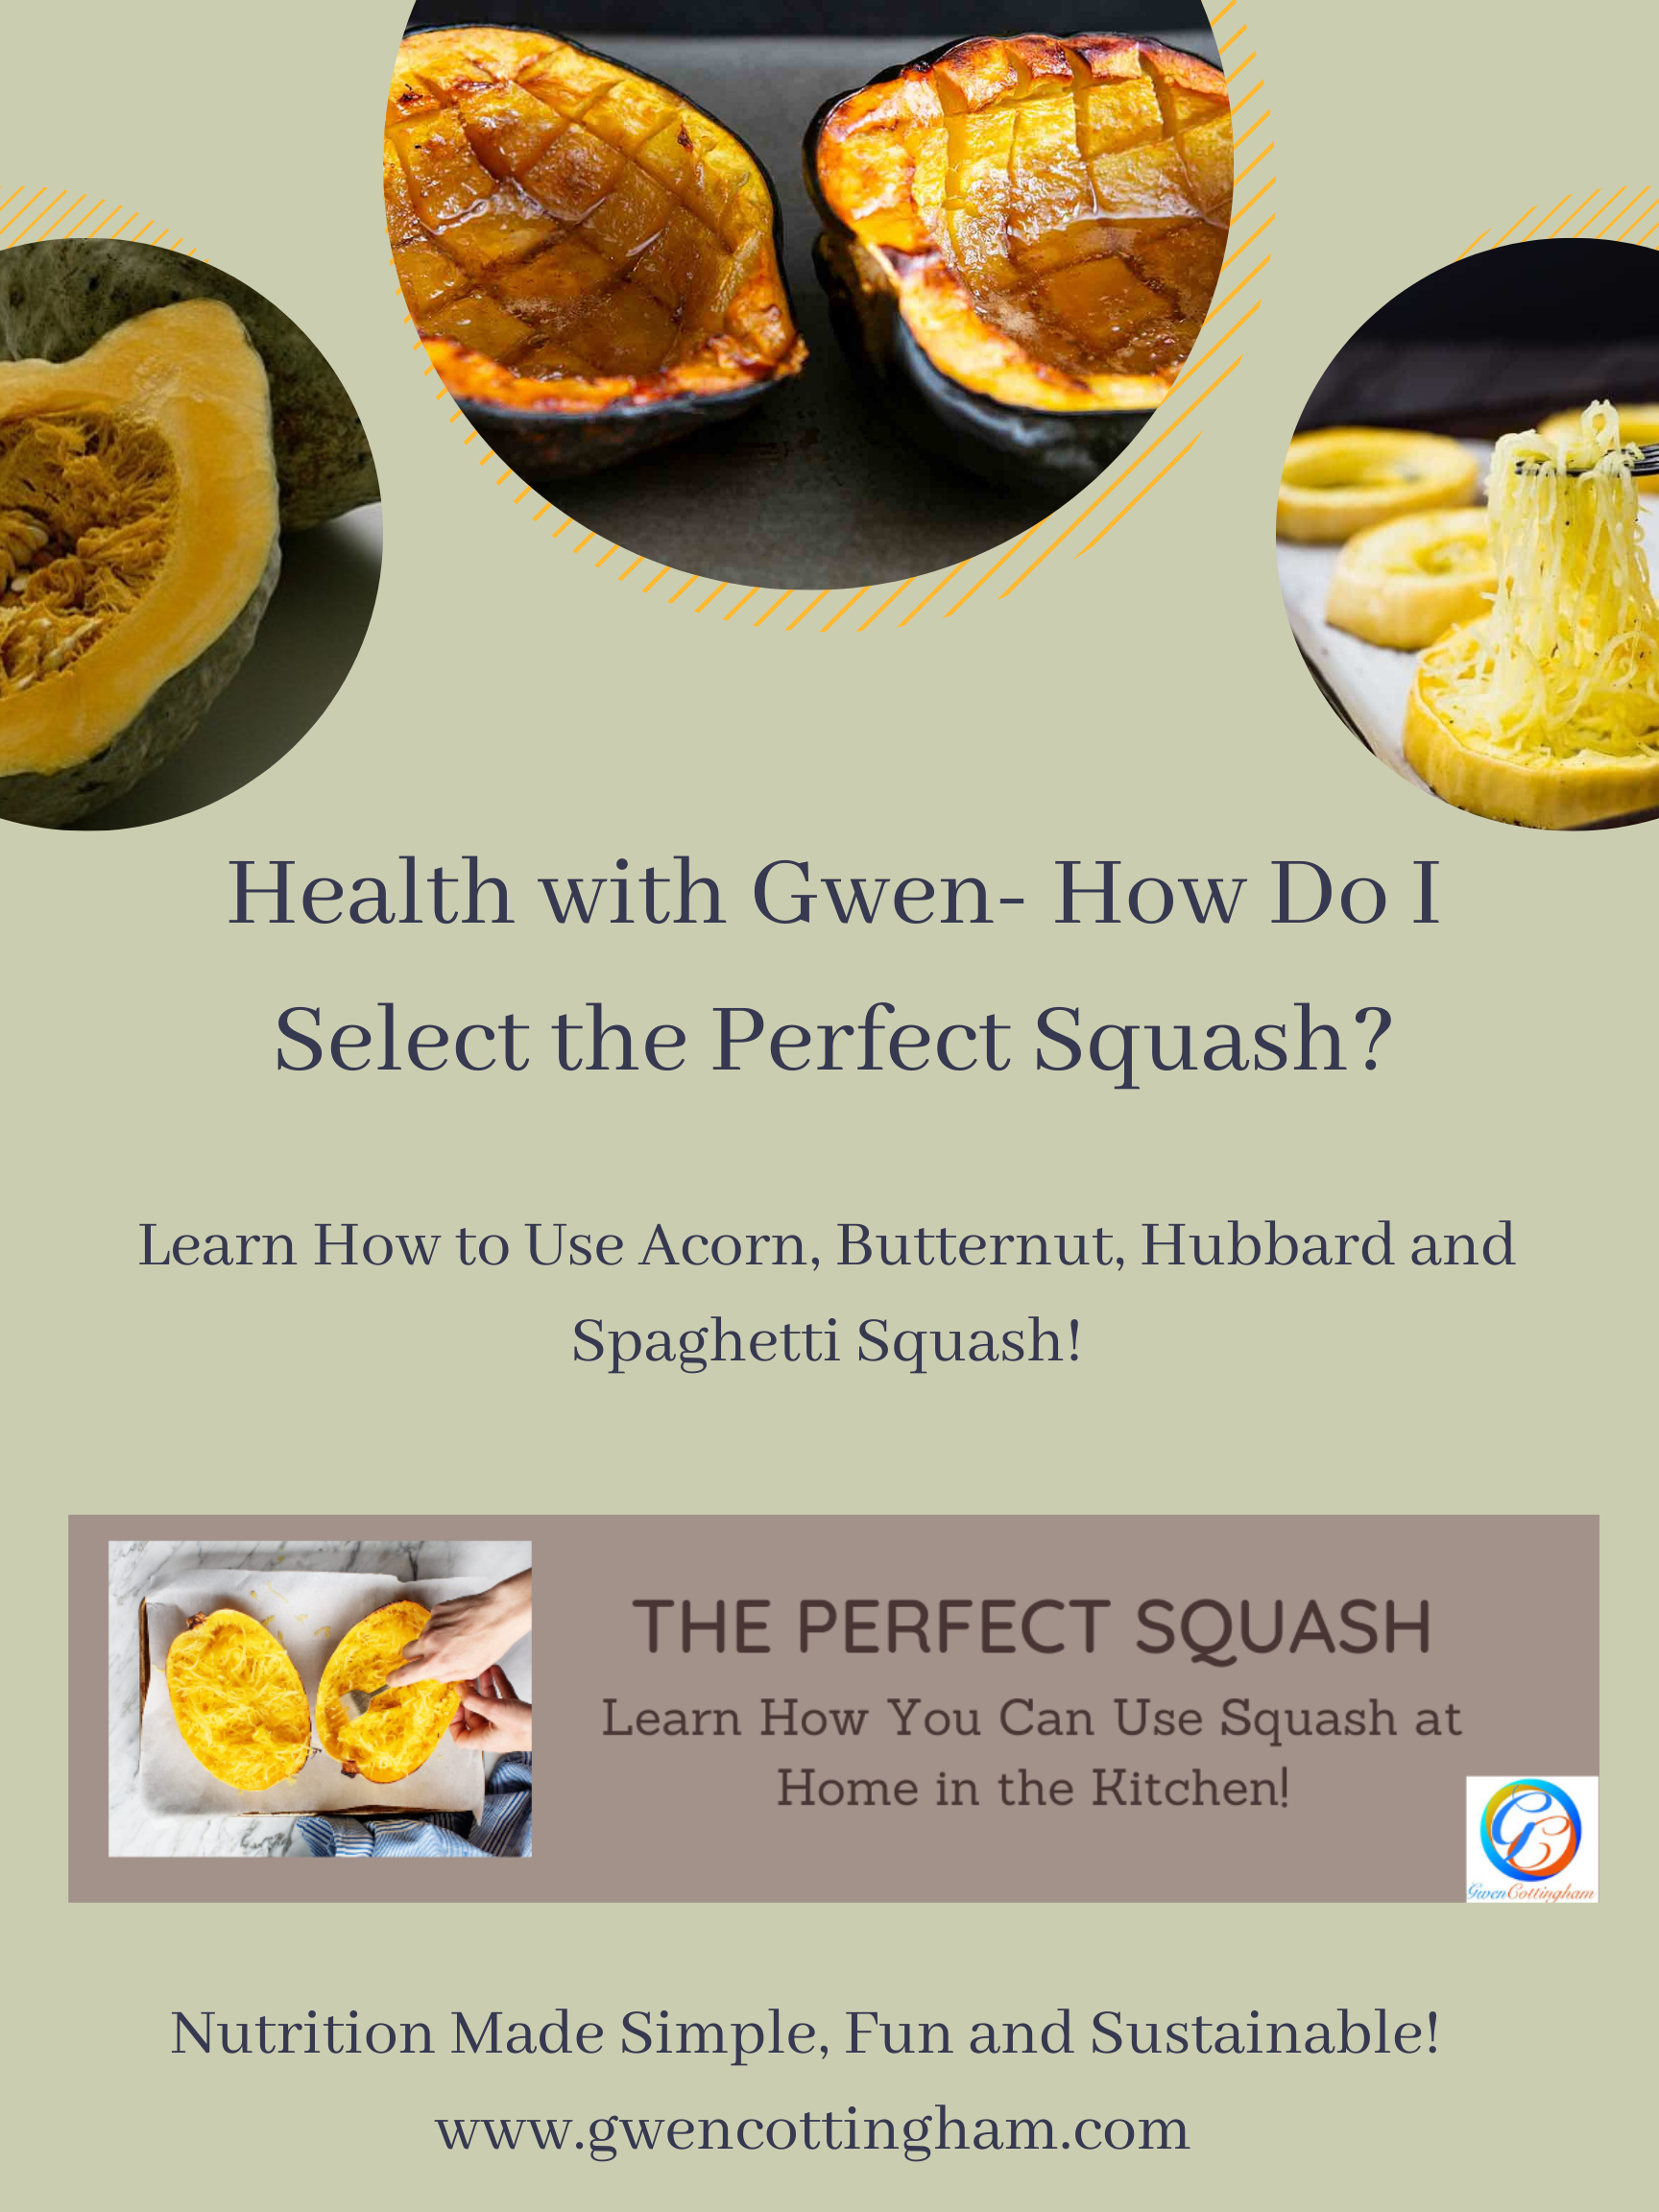 How to select the perfect squash?